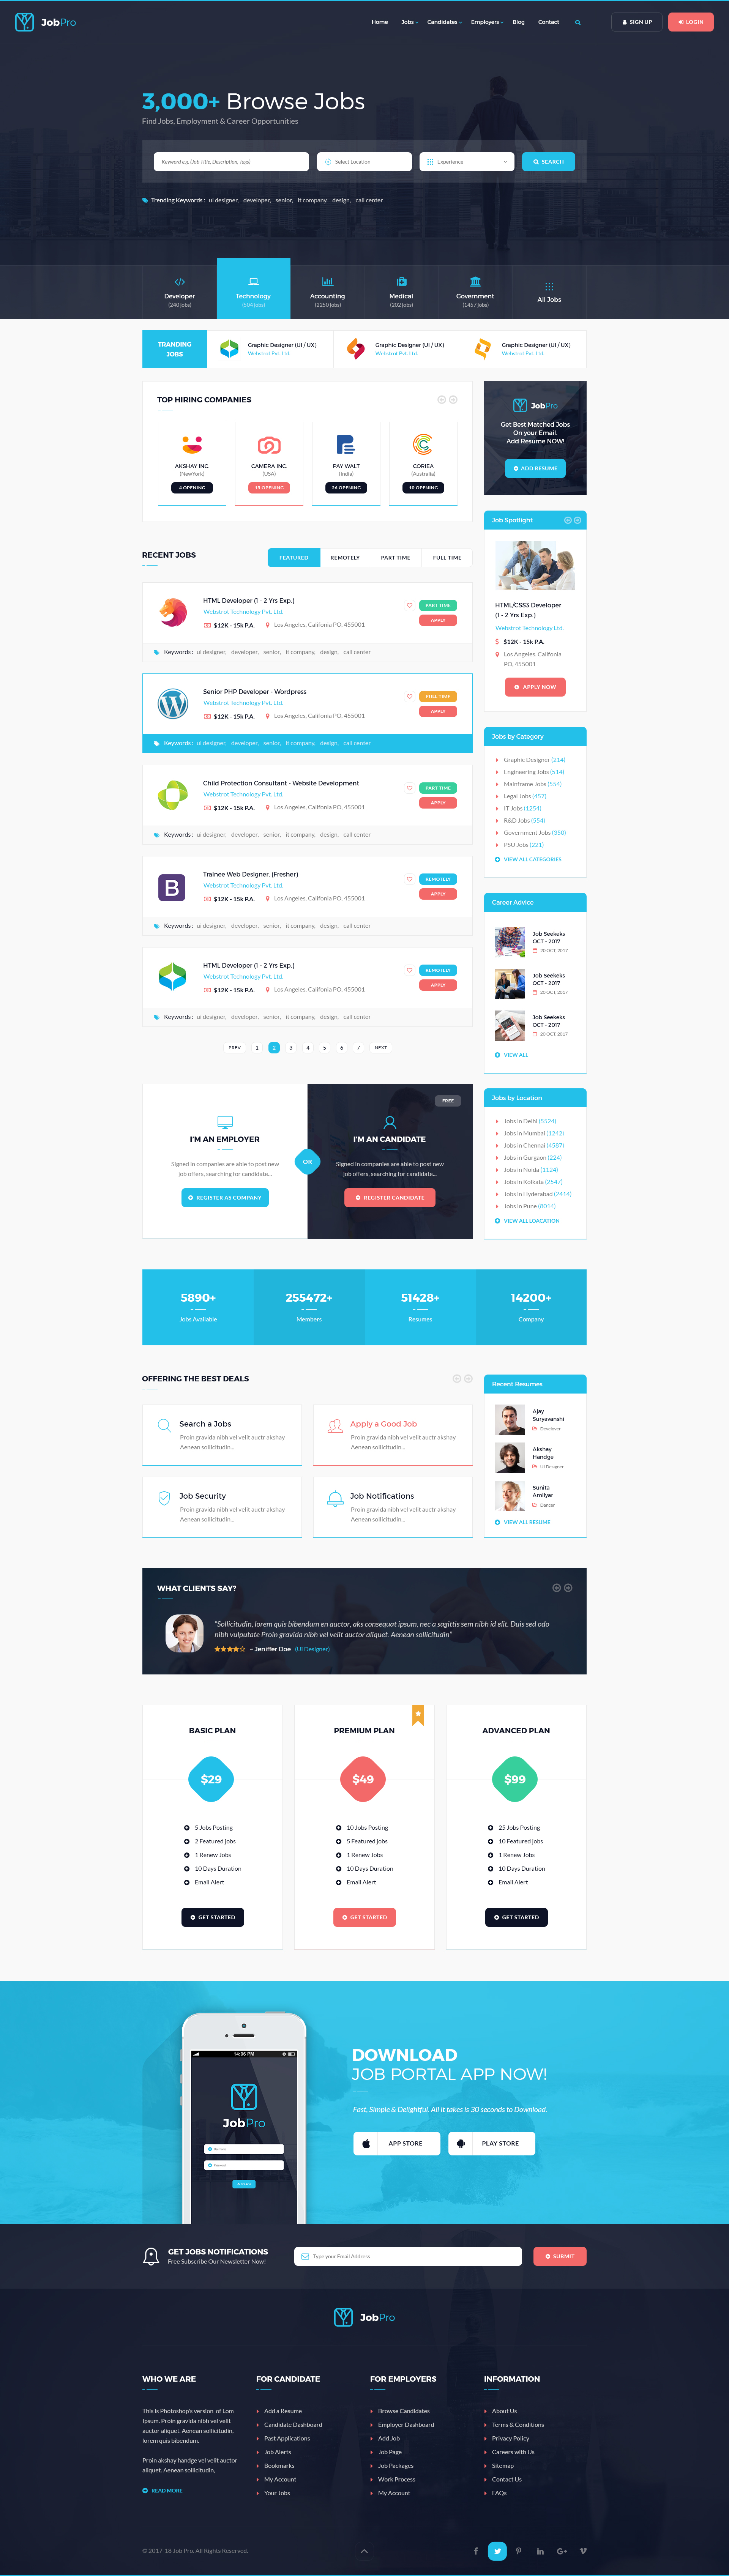 Job Pro - Job Board HTML Template by webstrot | ThemeForest